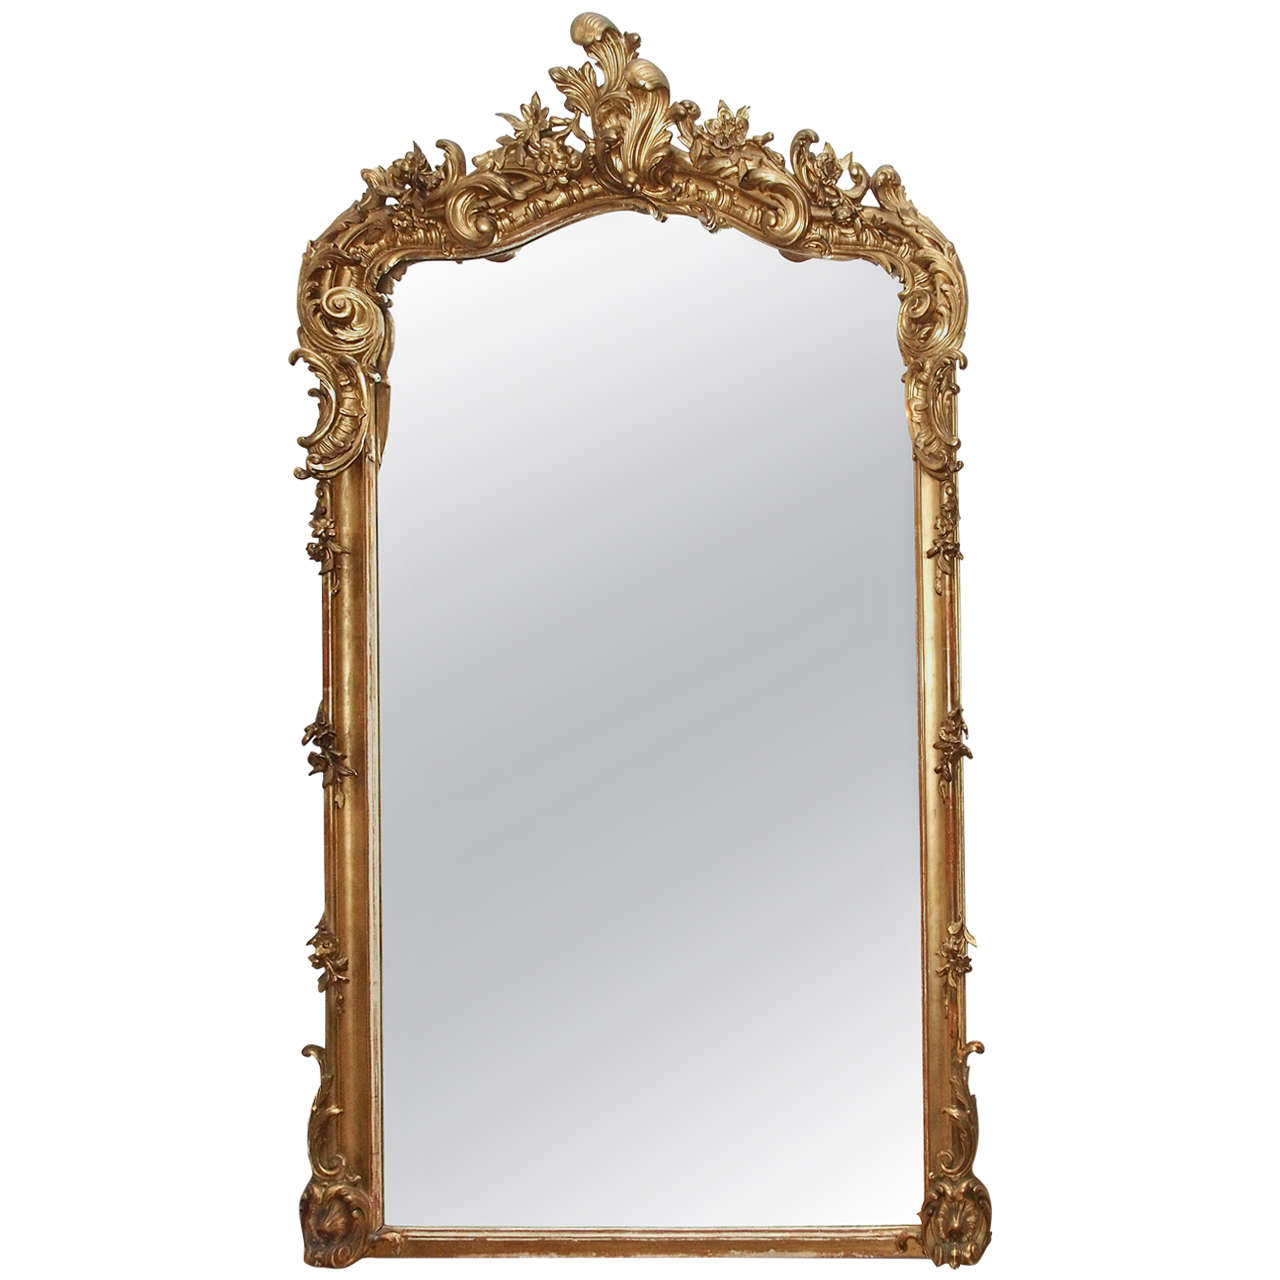 Antique french louis xv fine gold leaf beveled mirror at for Beveled mirror